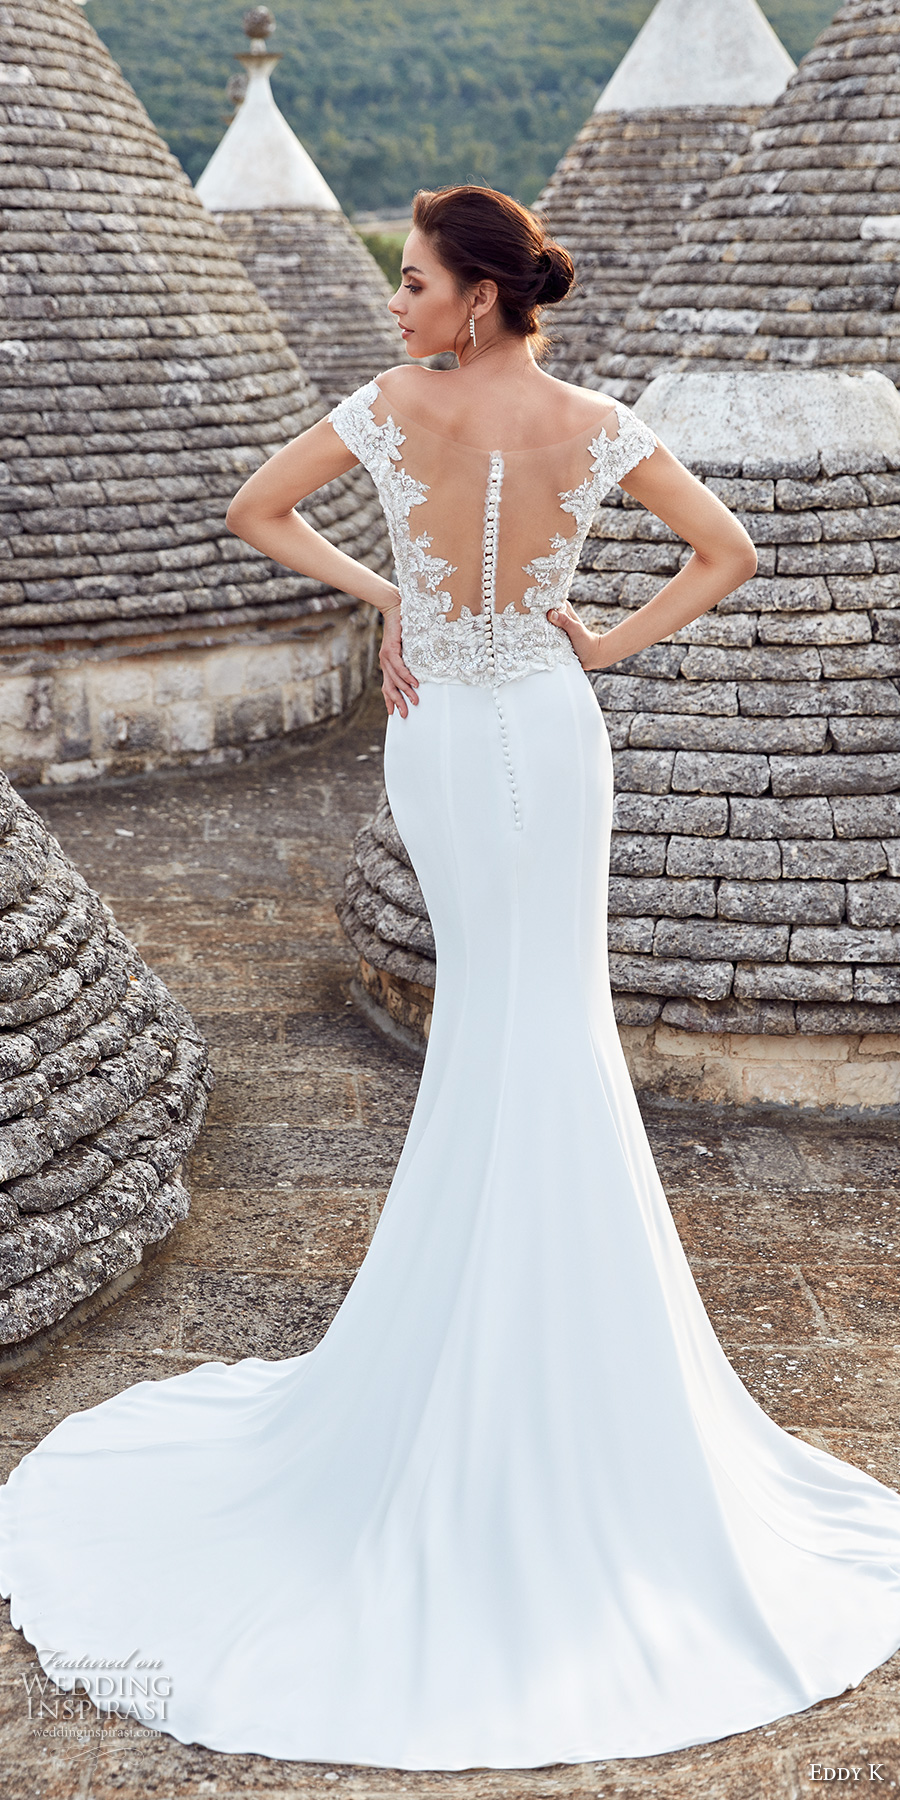 eddy k 2018 bridal cap sleeves deep plunging v neck heavily embellished bodice elegant glamorous sheath wedding dress short train (ottavia) bv